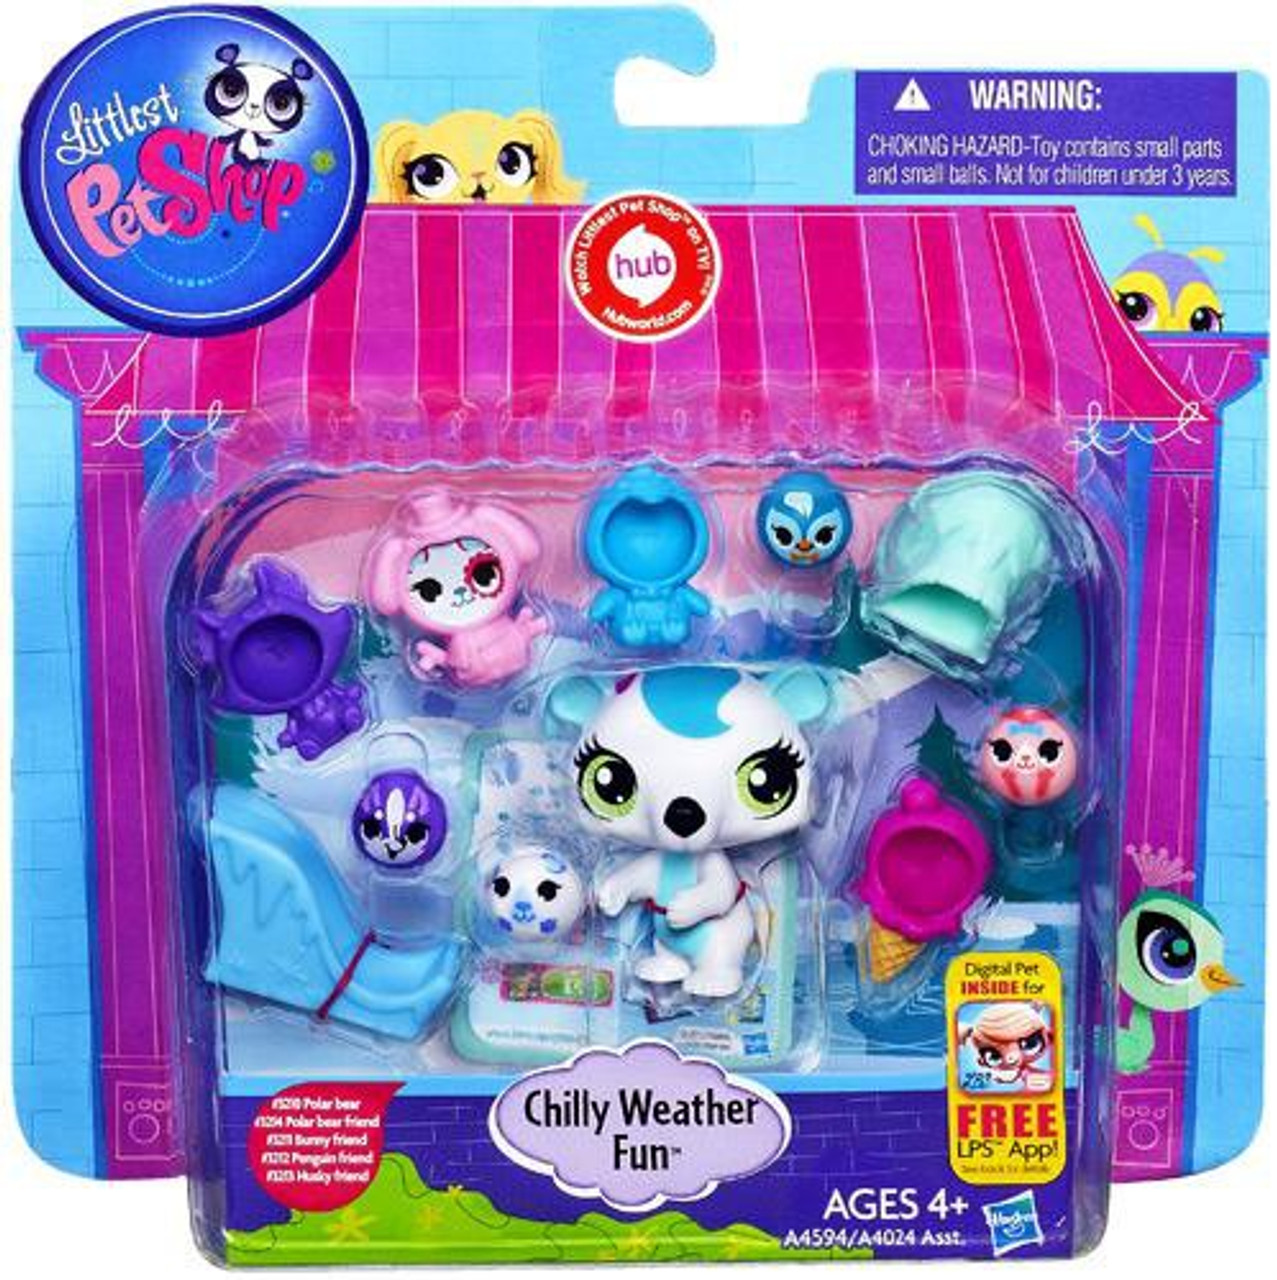 Littlest Pet Shop Chilly Weather Fun Playset